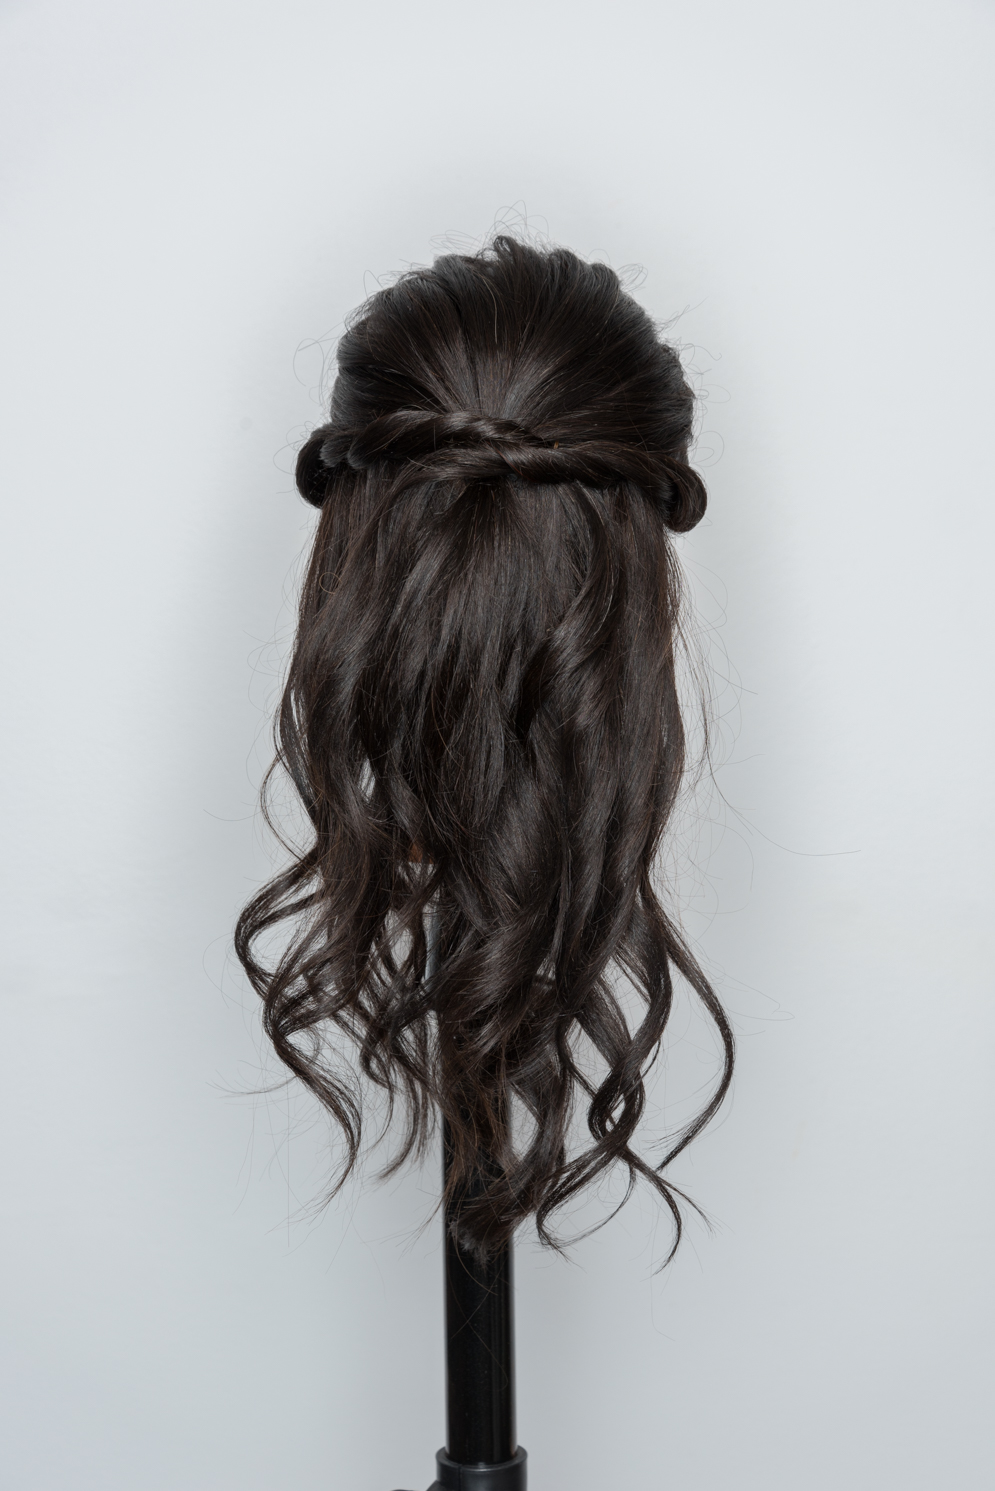 ROCK MAMA NYC LIFESTYLE BLOG - HAIR STYLES - HOW TO MAKE SUPER EASY HALF HAIR UP